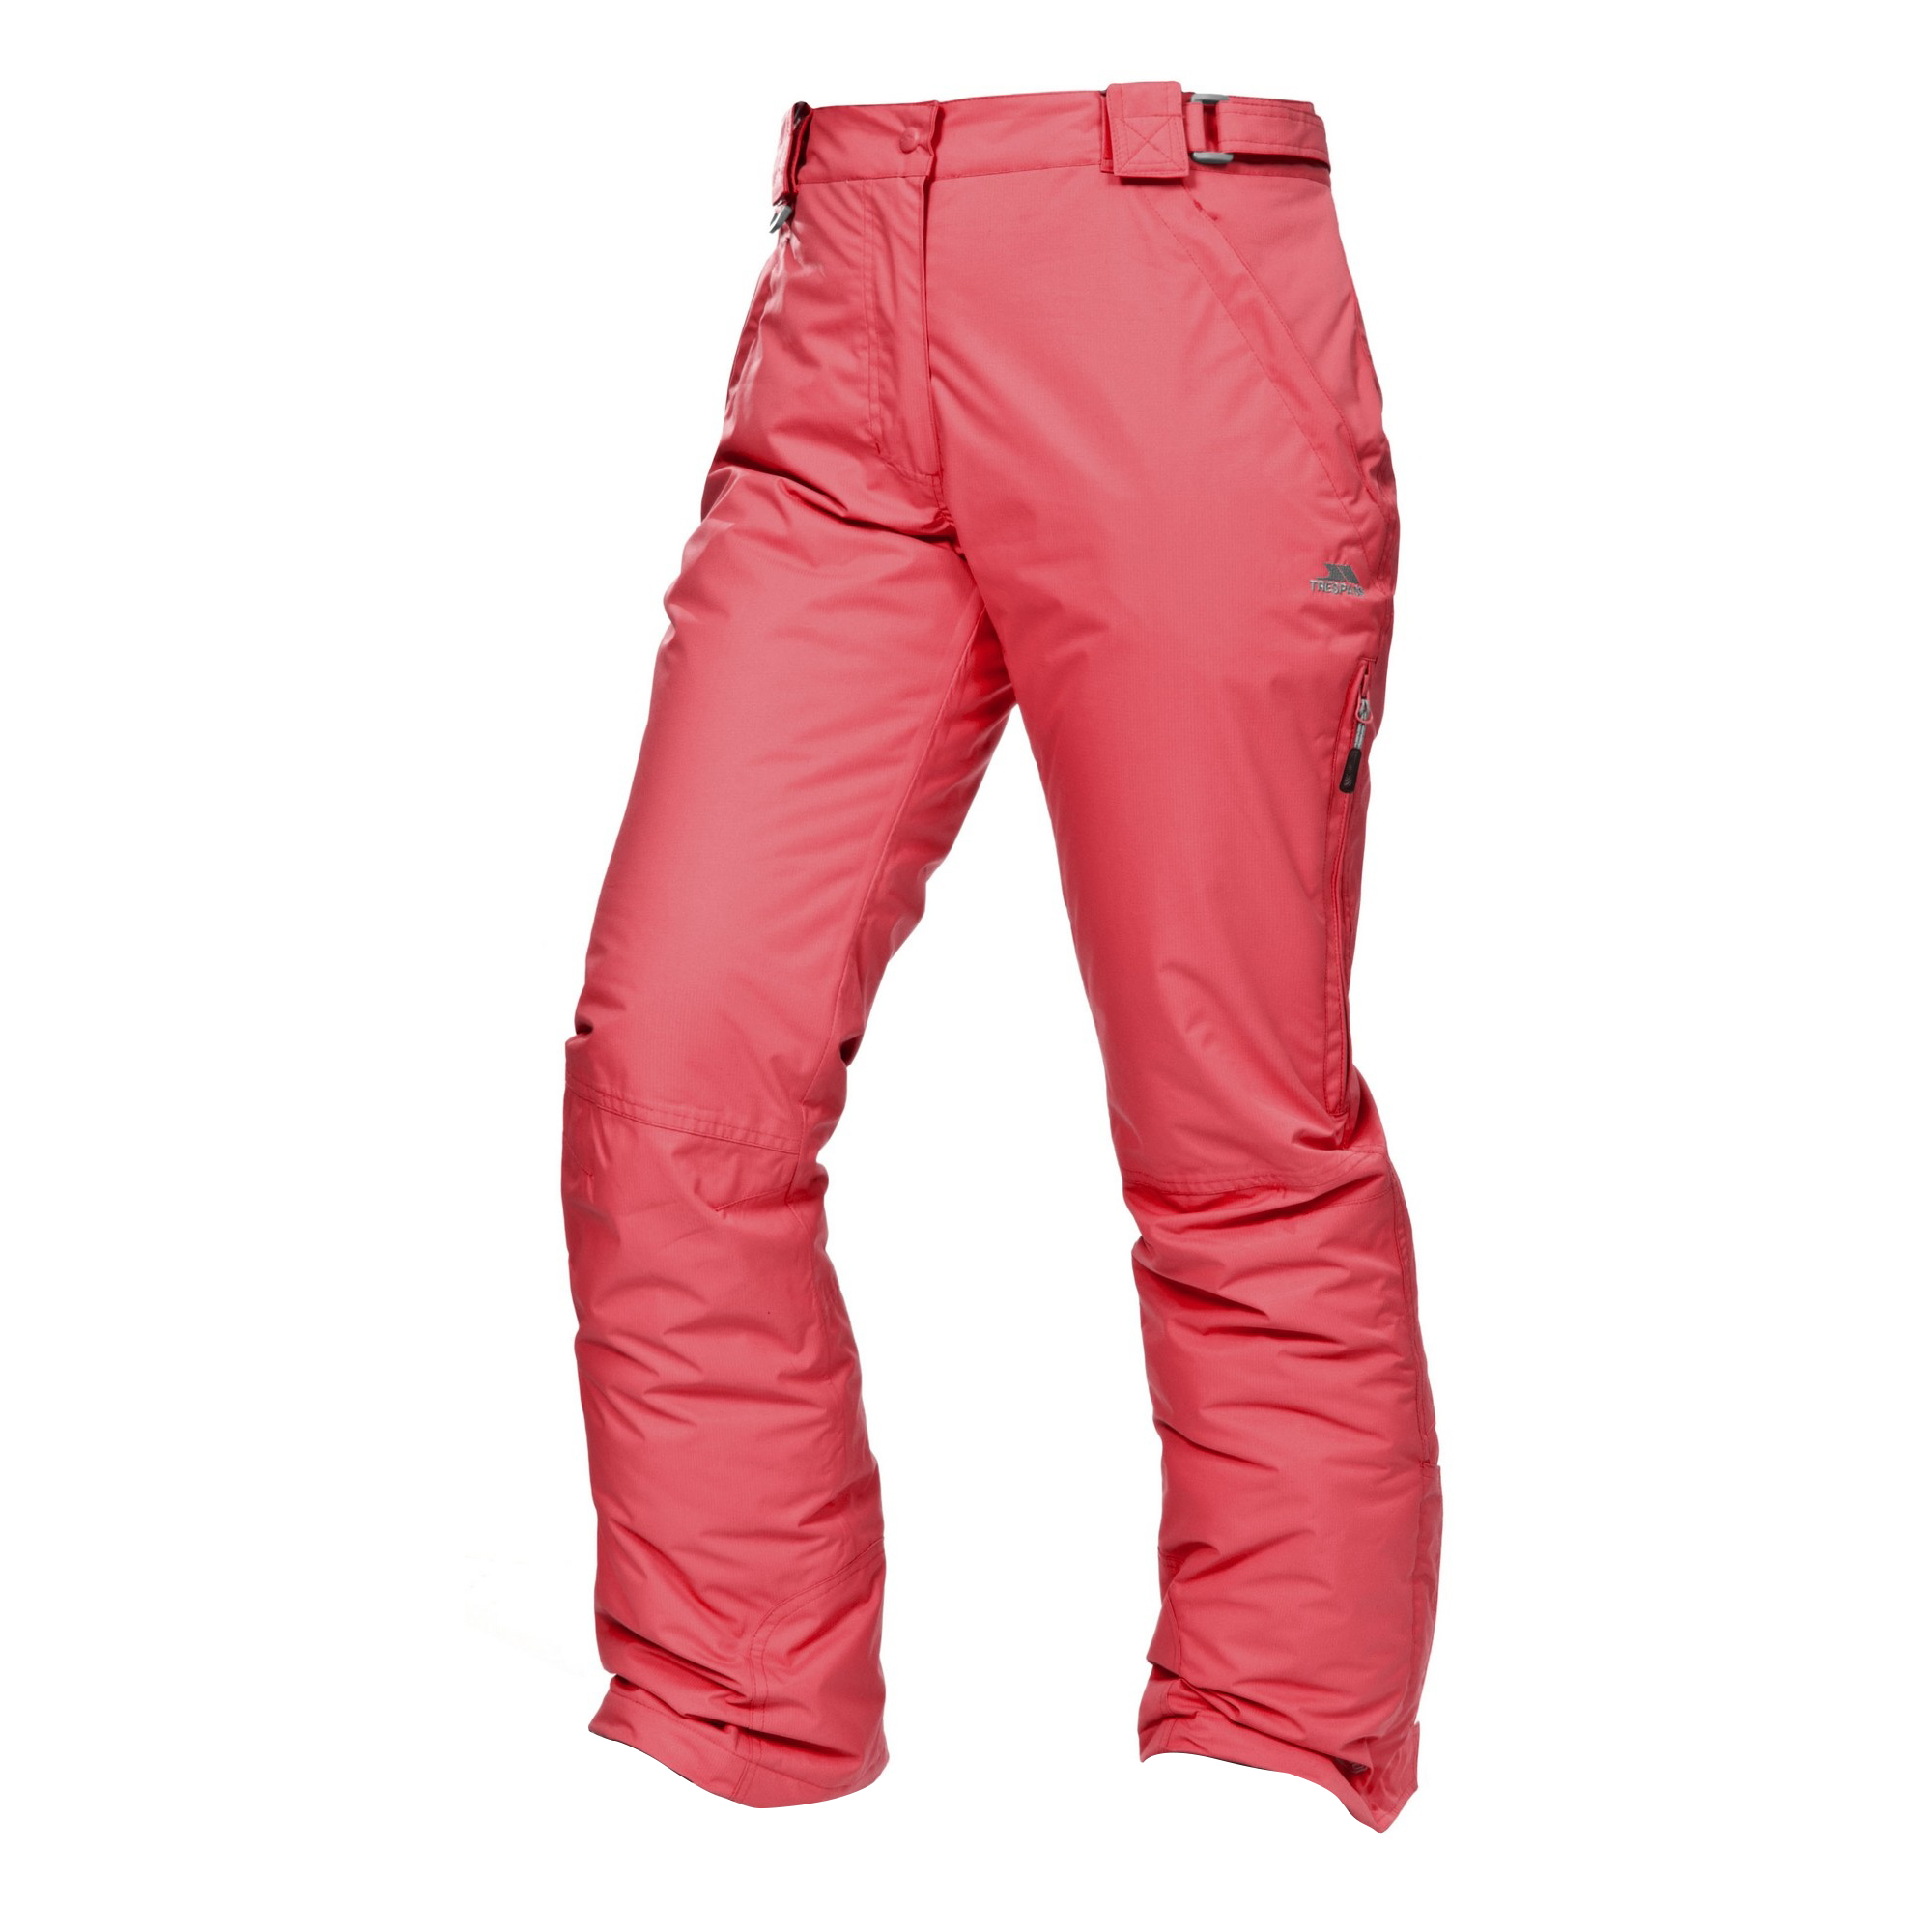 Mountain Warehouse Moon Womens Ski Pants - Warm Ladies Trousers. by Mountain Warehouse. $ $ 79 99 Prime. Some sizes/colors are Prime eligible. FREE Shipping on eligible orders. Show only Mountain Warehouse items. out of 5 stars See Color & Size Options. Gerry Women's Stretch Snow Pants.